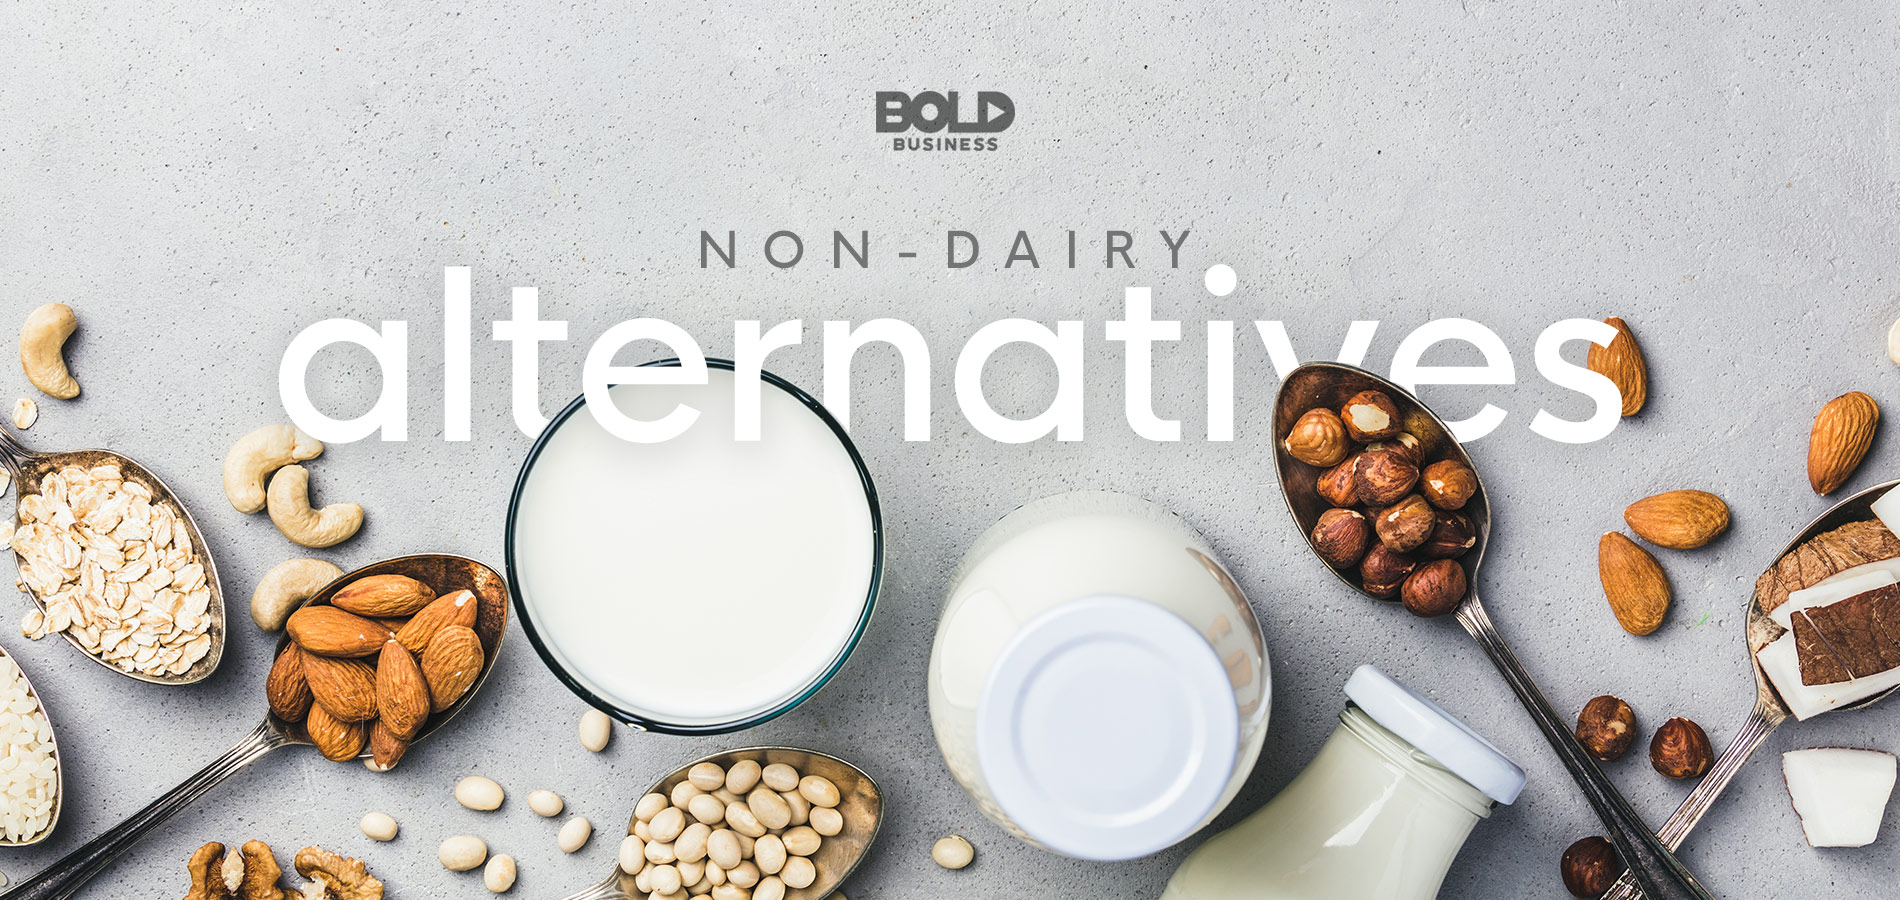 e908556cd42 a photo of different sources of non-dairy alternatives or dairy-free  alternatives,